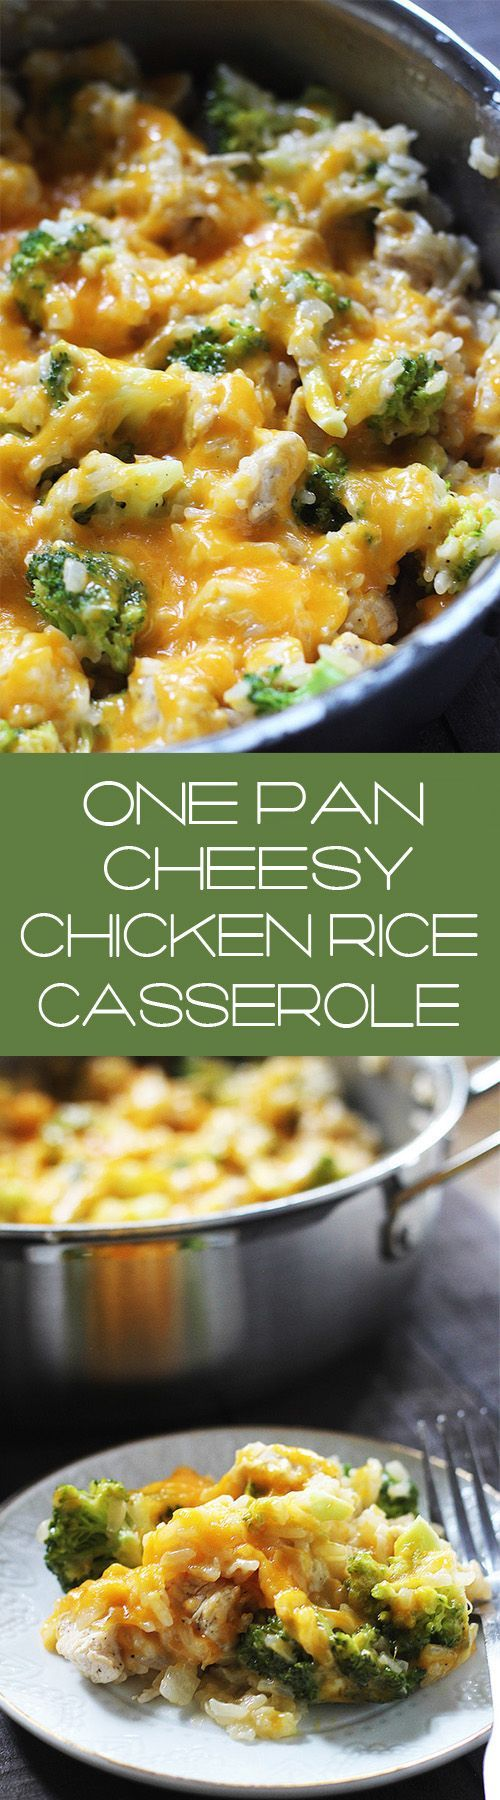 This One Pan Cheesy Chicken Broccoli Rice Casserole can be thrown together in minutes, with minimal ingredients needed!